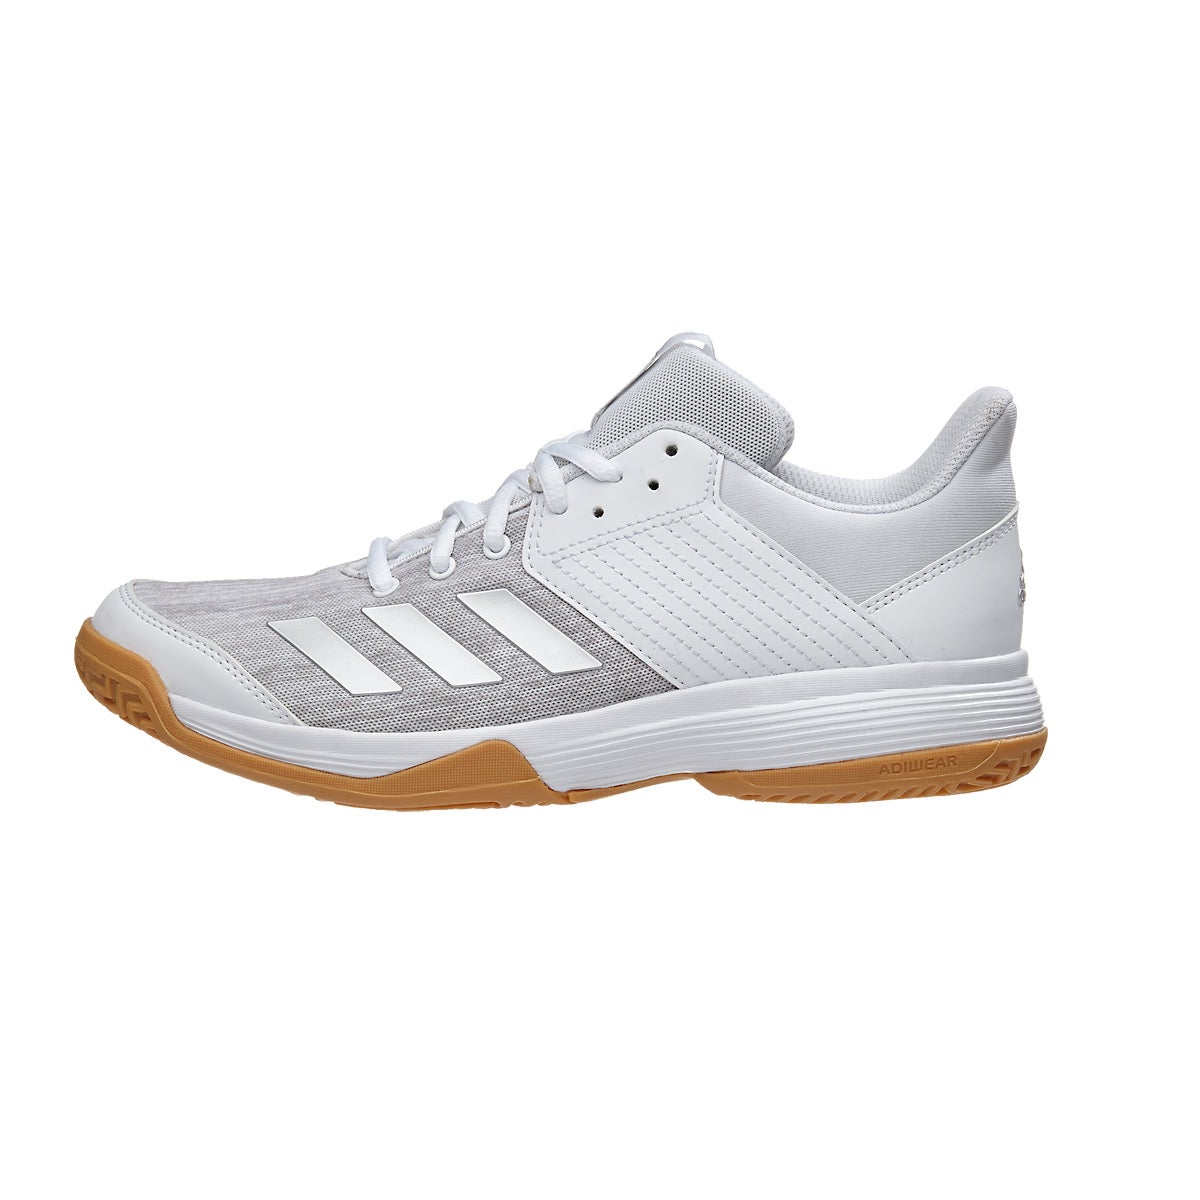 f0fa1fc3a59 adidas Ligra 6 Women s Shoes - White Silver 360° View.